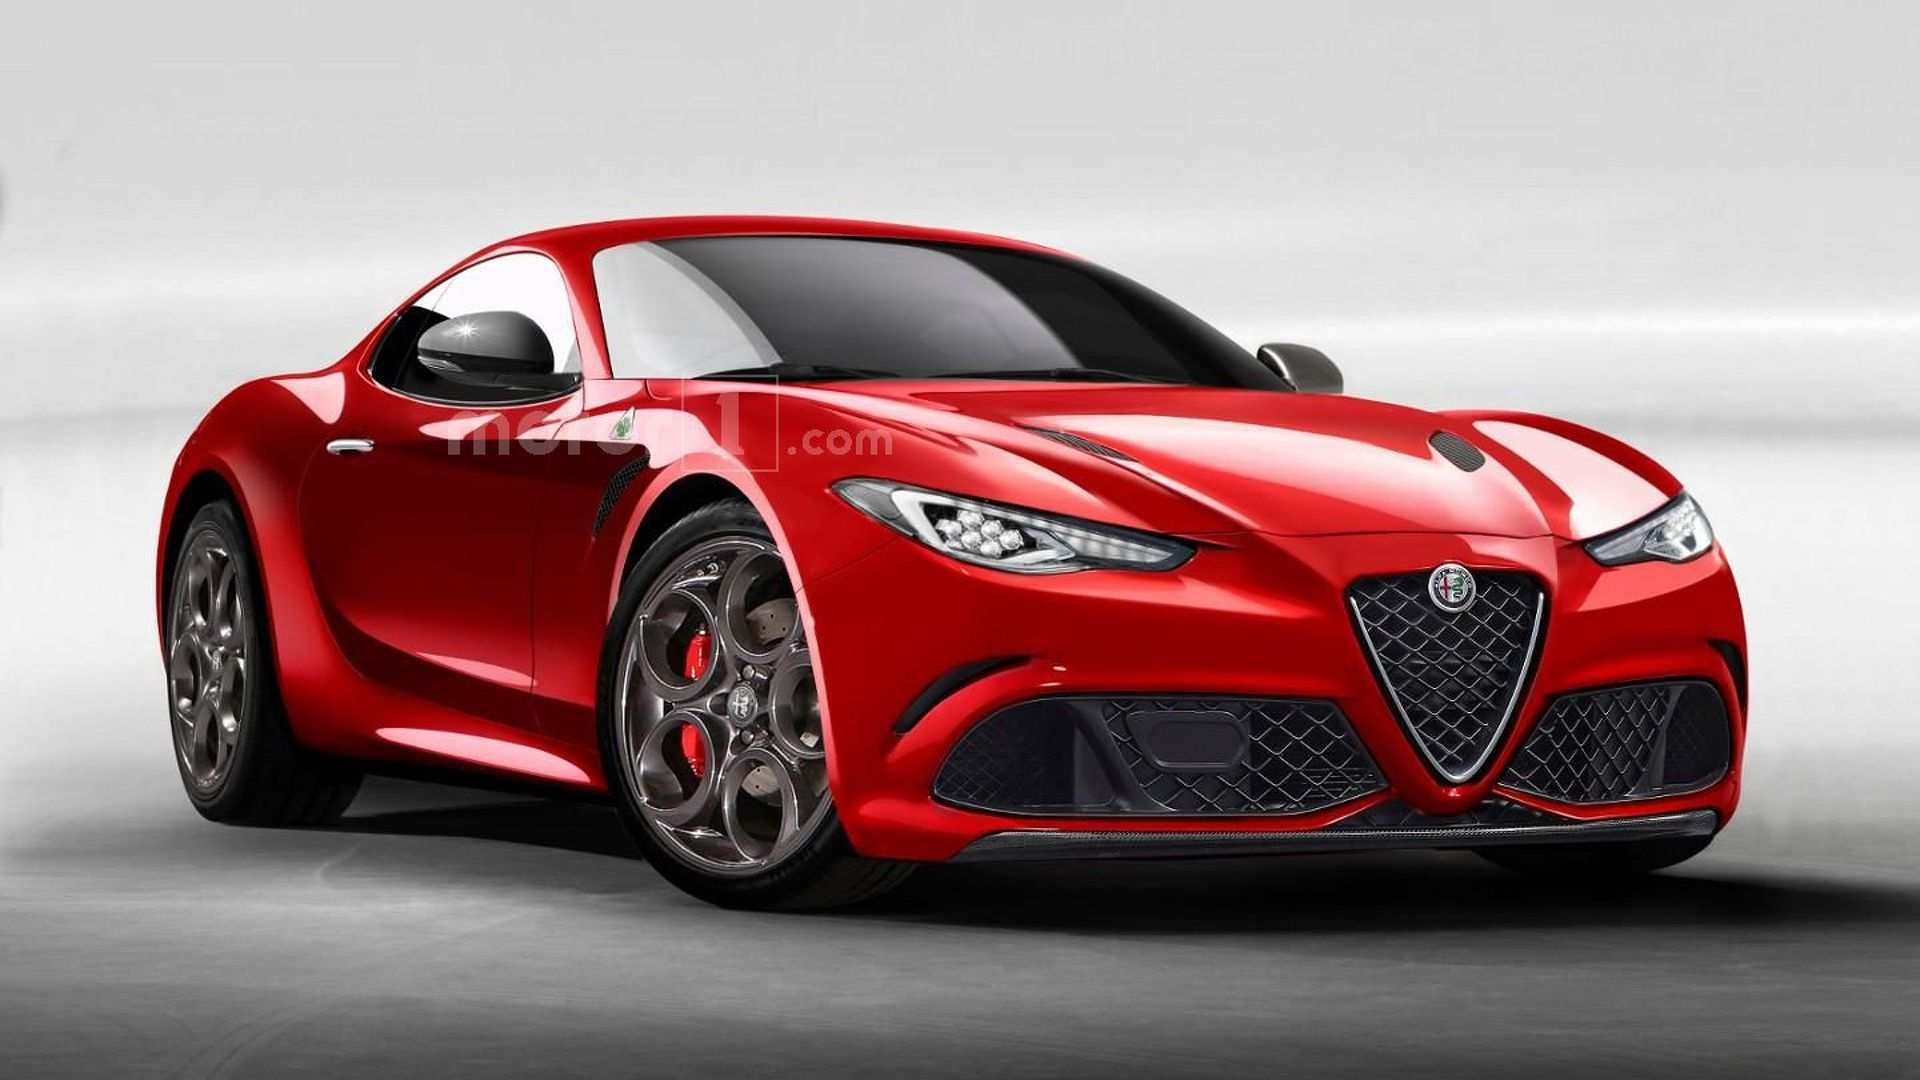 22 Gallery of Alfa Spider 2019 Pictures with Alfa Spider 2019